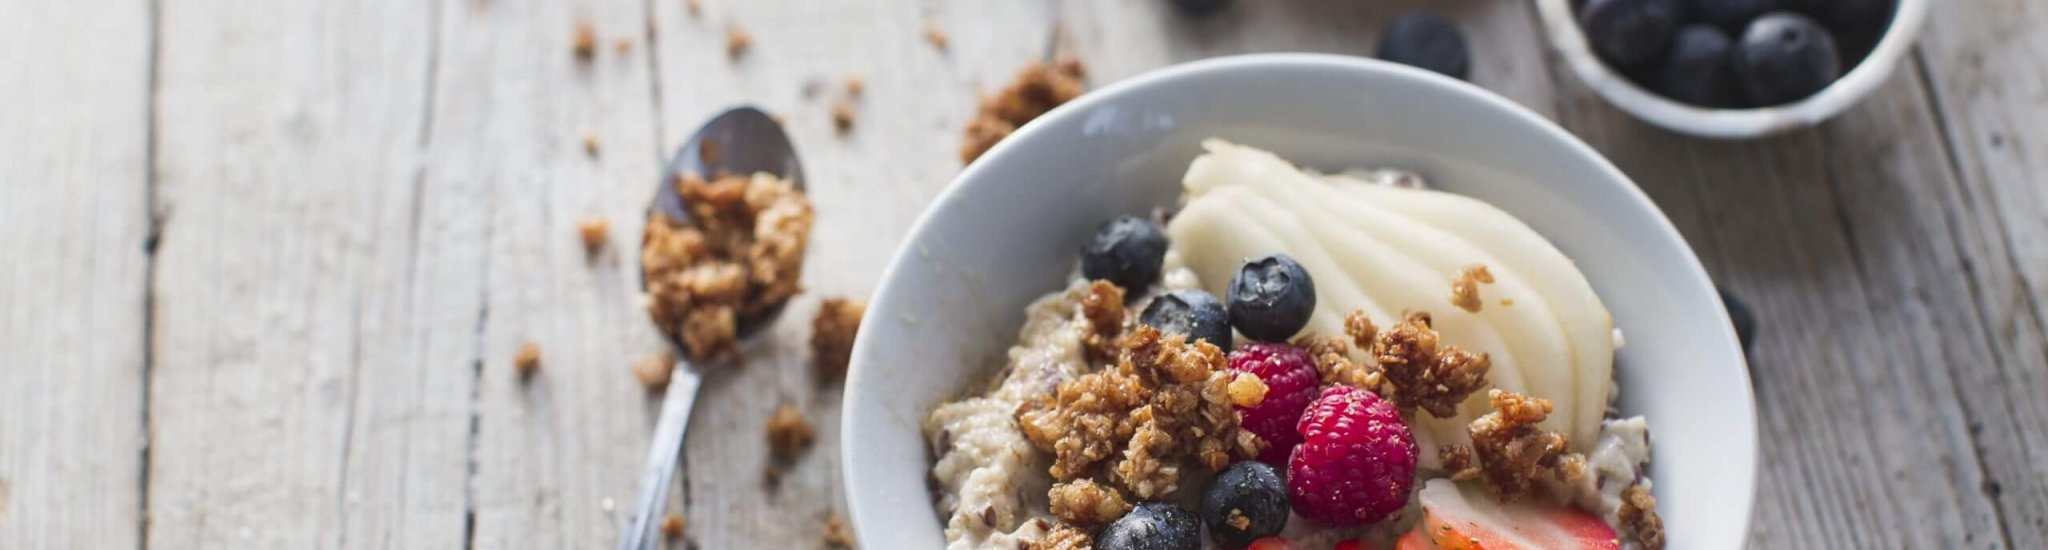 oat cereals porridge with fresh fruits on a wooden table